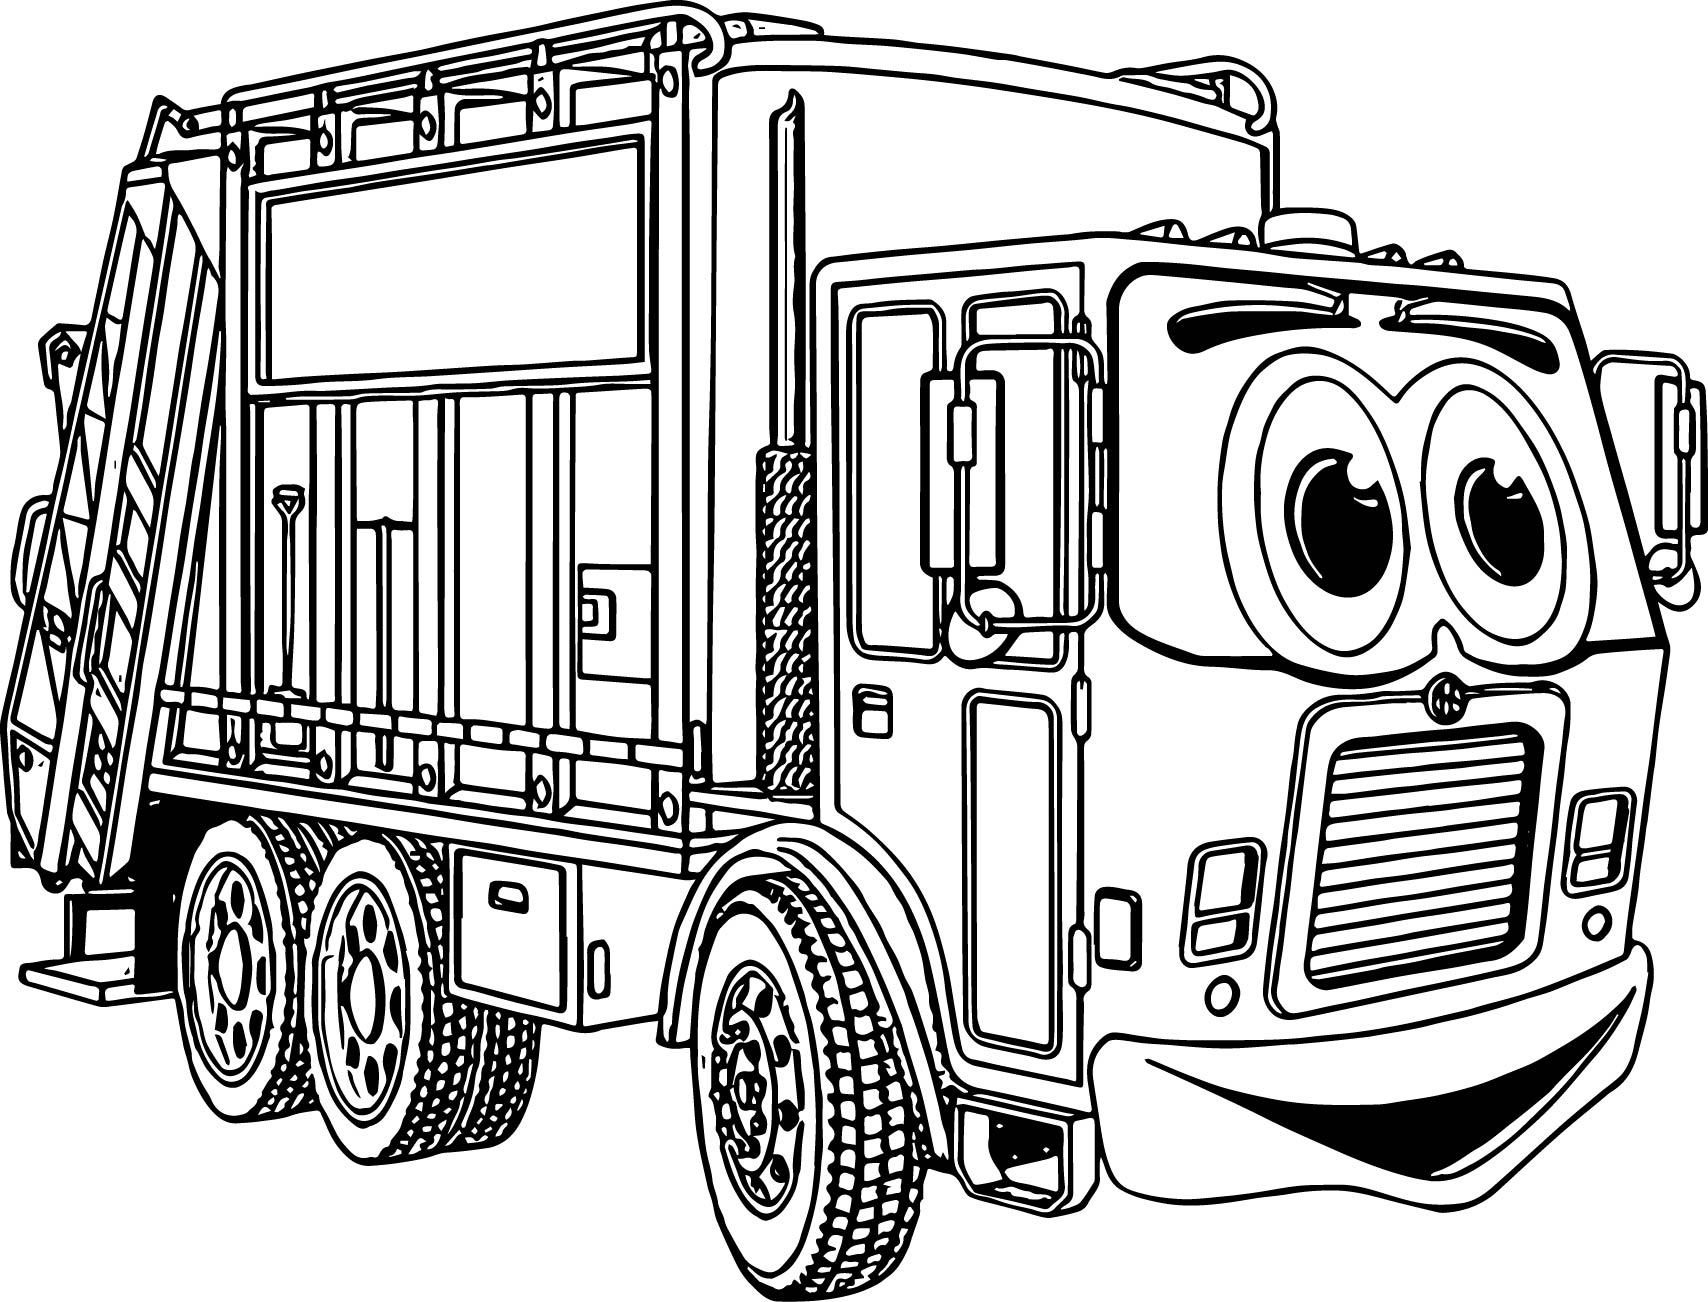 Toyota Truck Cartoon Coloring Coloring Pages